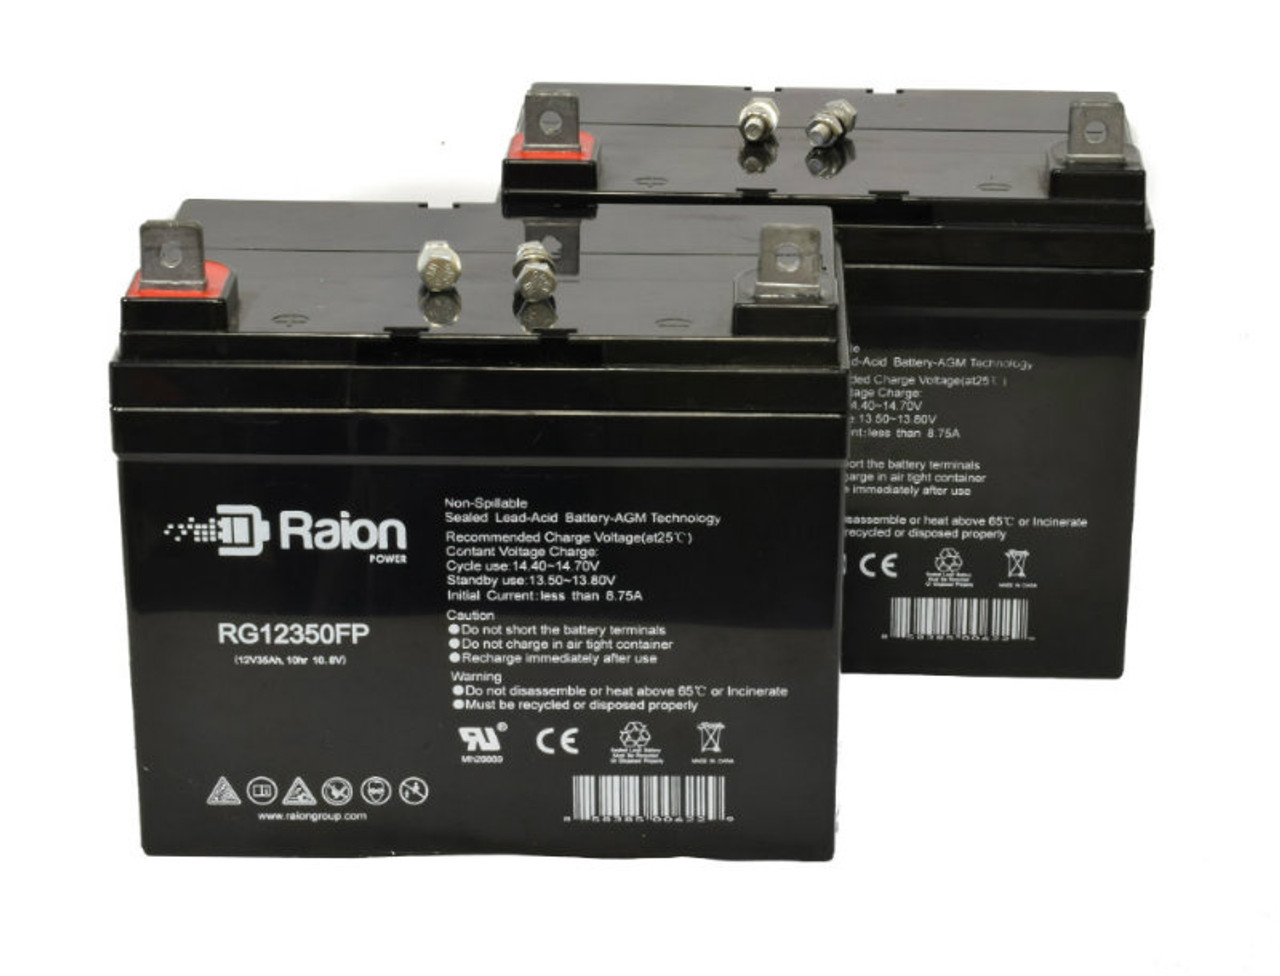 Raion Power RG12350FP Replacement Wheelchair Battery For Electric Mobility Ultralite 105 (2 Pack)